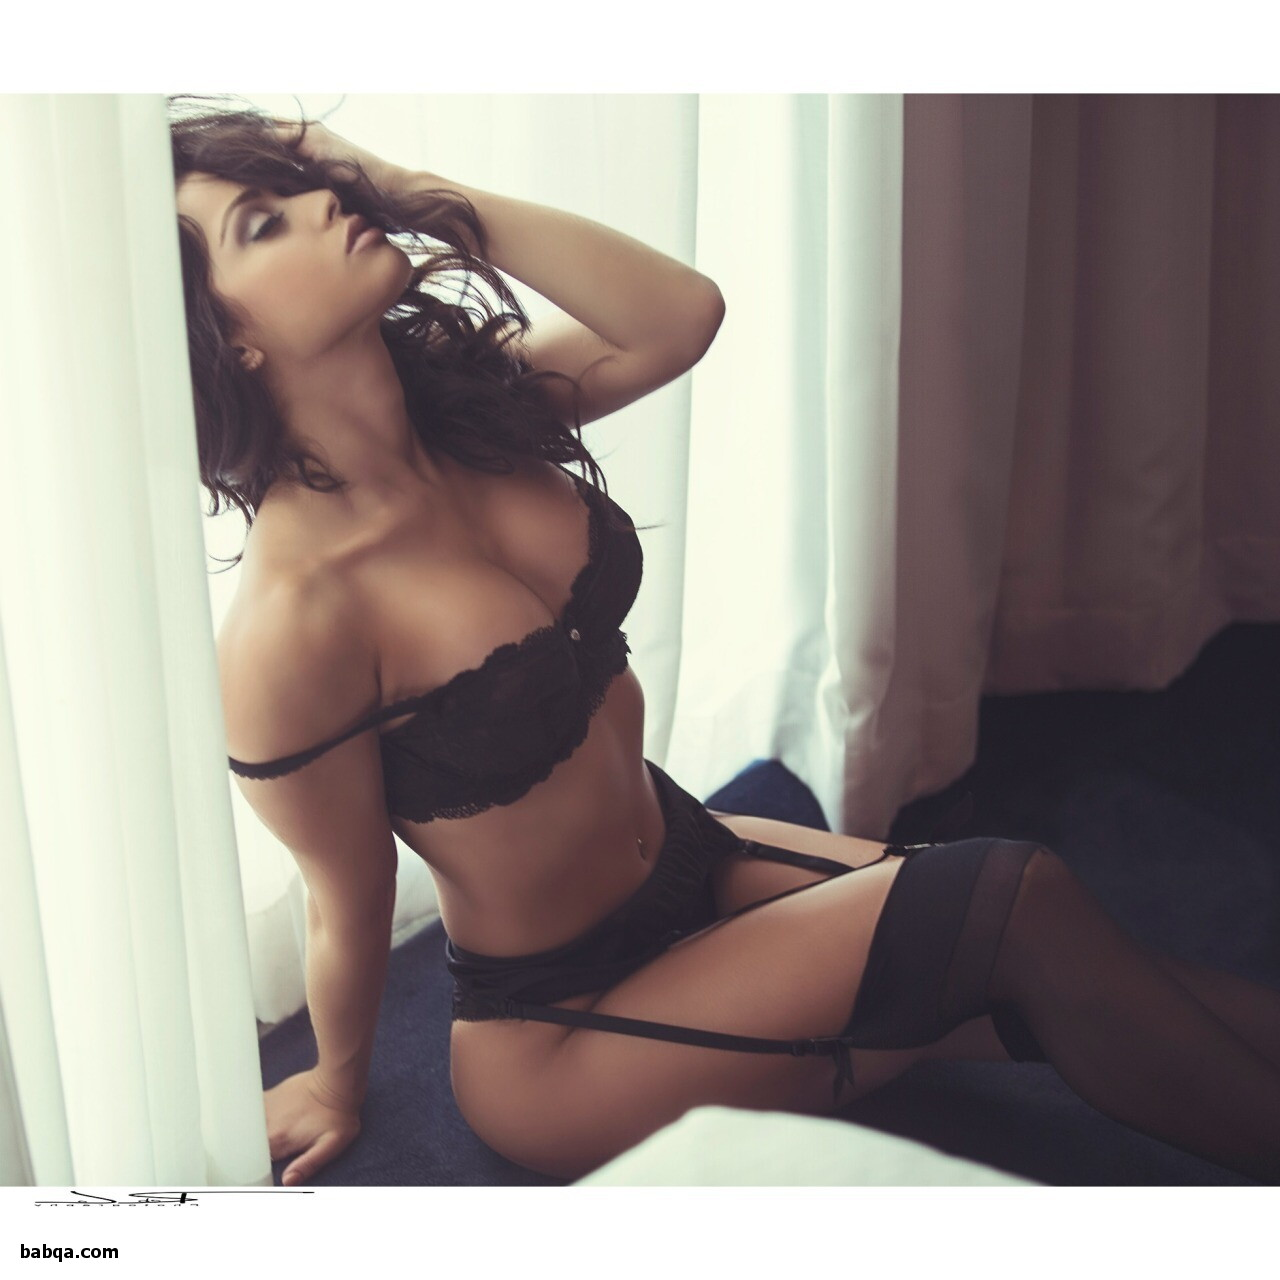 lingerie wife tubes and almost nude lingerie